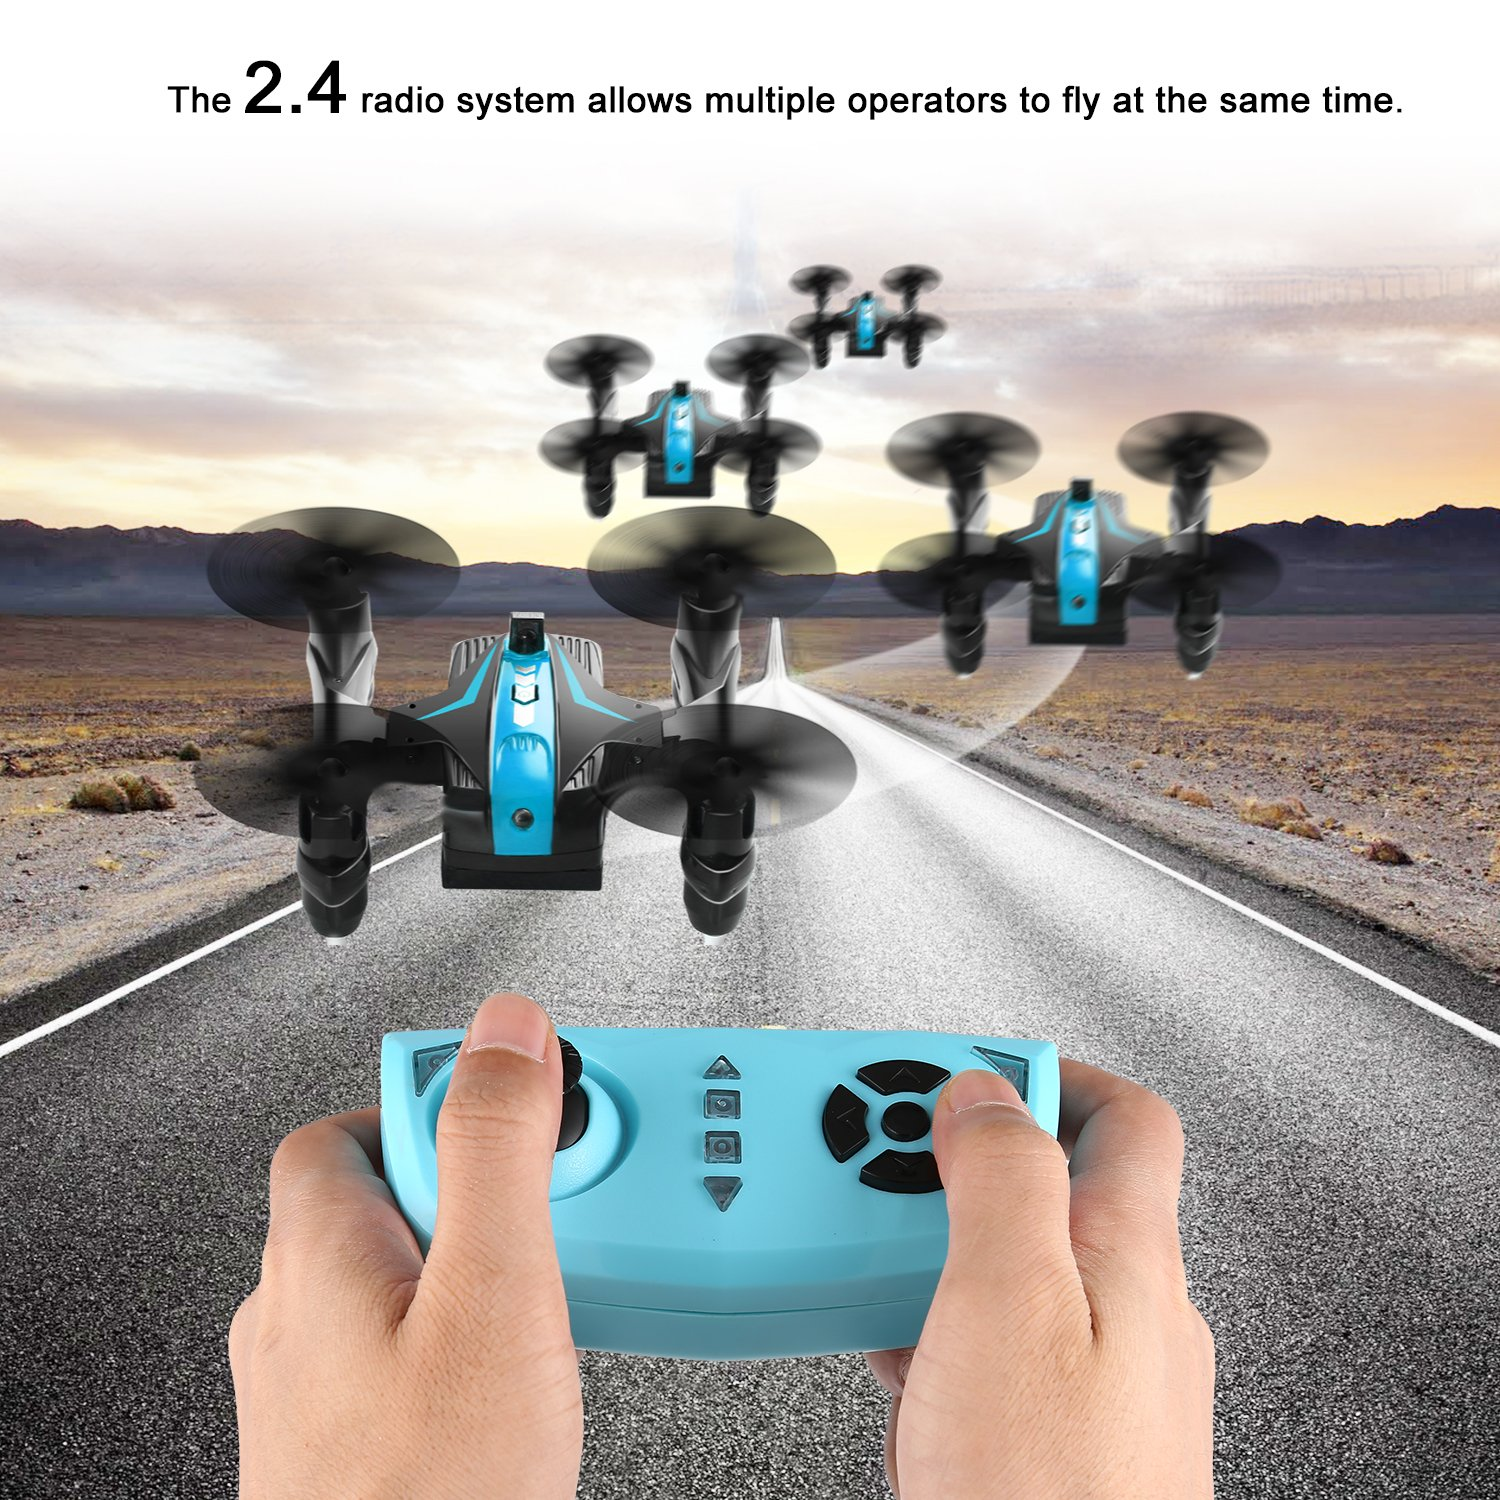 Mini Drone Wars Battle Drones Mini Battle Drones for Air War with 4 Channel and Infrared Fighting Function, Headless Mode and Emergency Stop, Toy Drone for Beginner & Kids Fighting